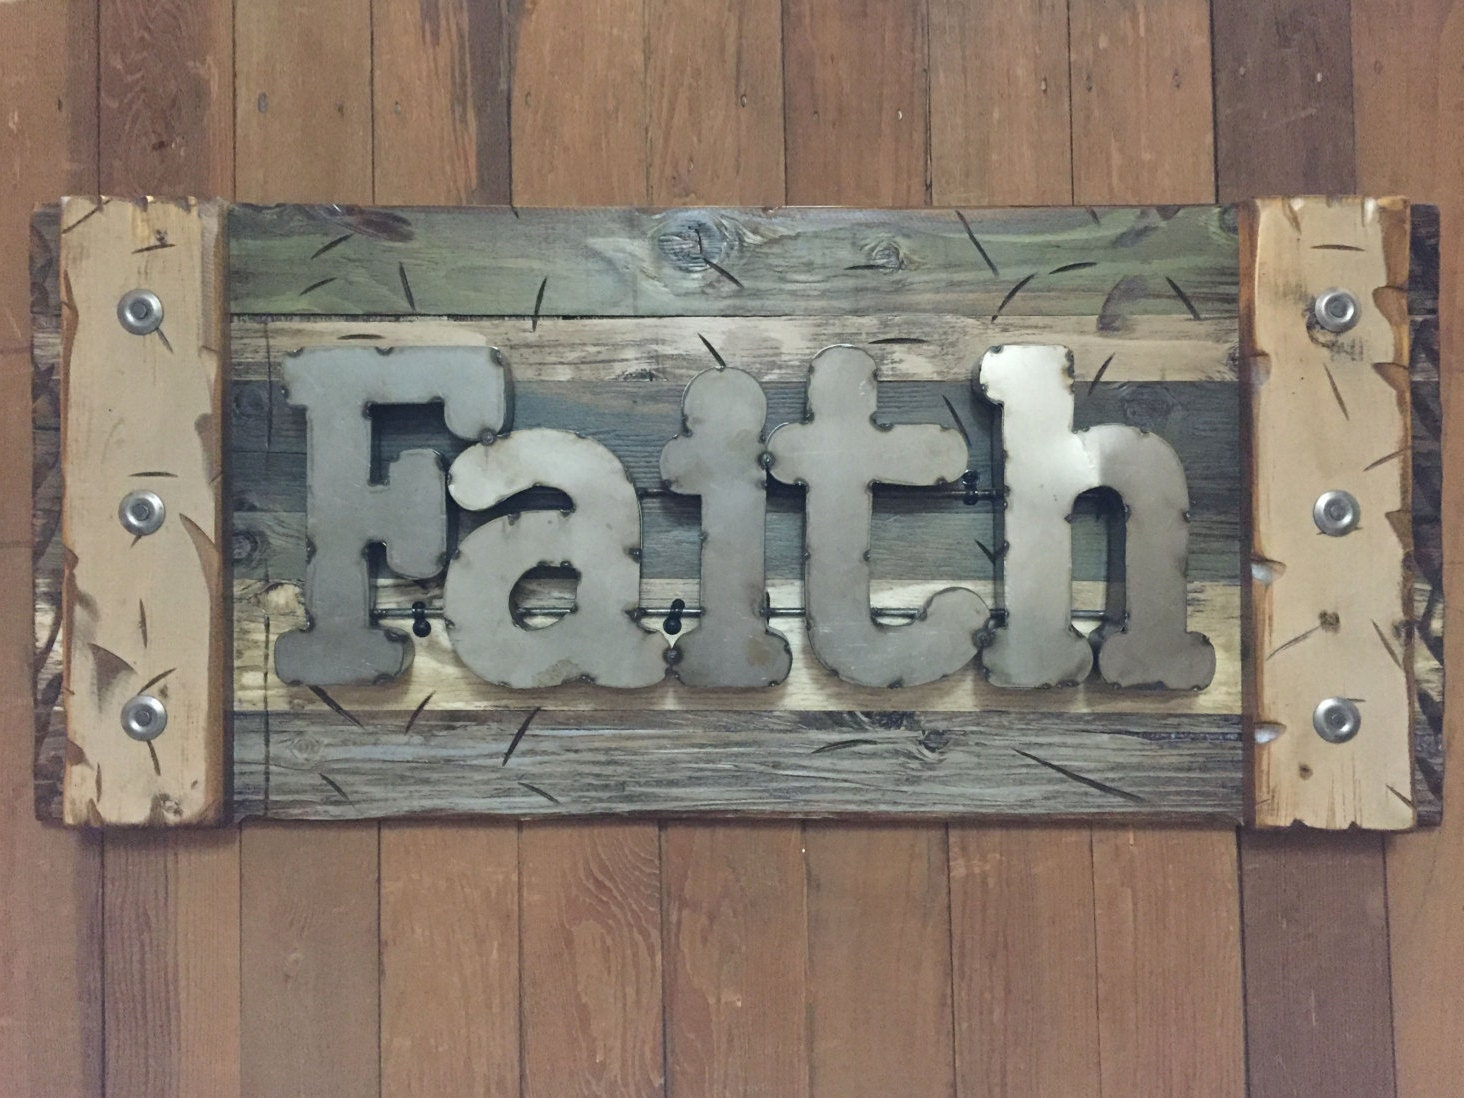 Navy Blue Metal Wall Art: FAITH Rustic Sign Reclaimed Shutter Distressed Industrial